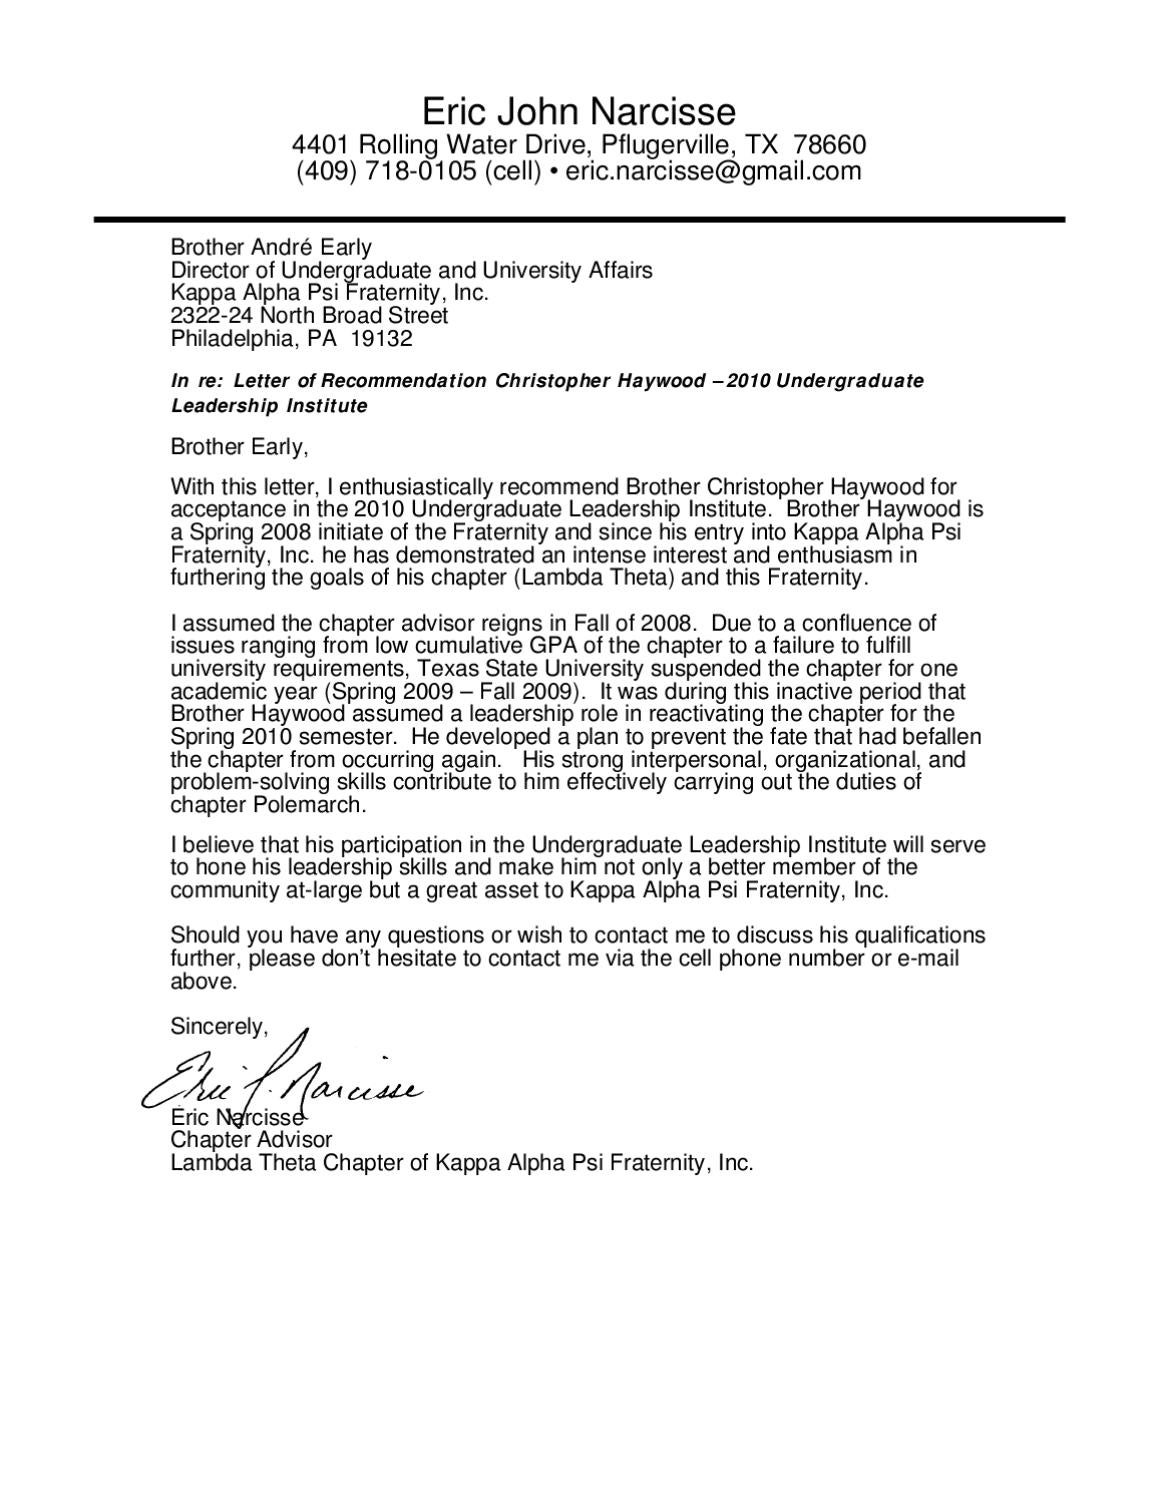 sample letter of recommendation for aka sorority letter of rec by chris haywood issuu 24629 | page 1